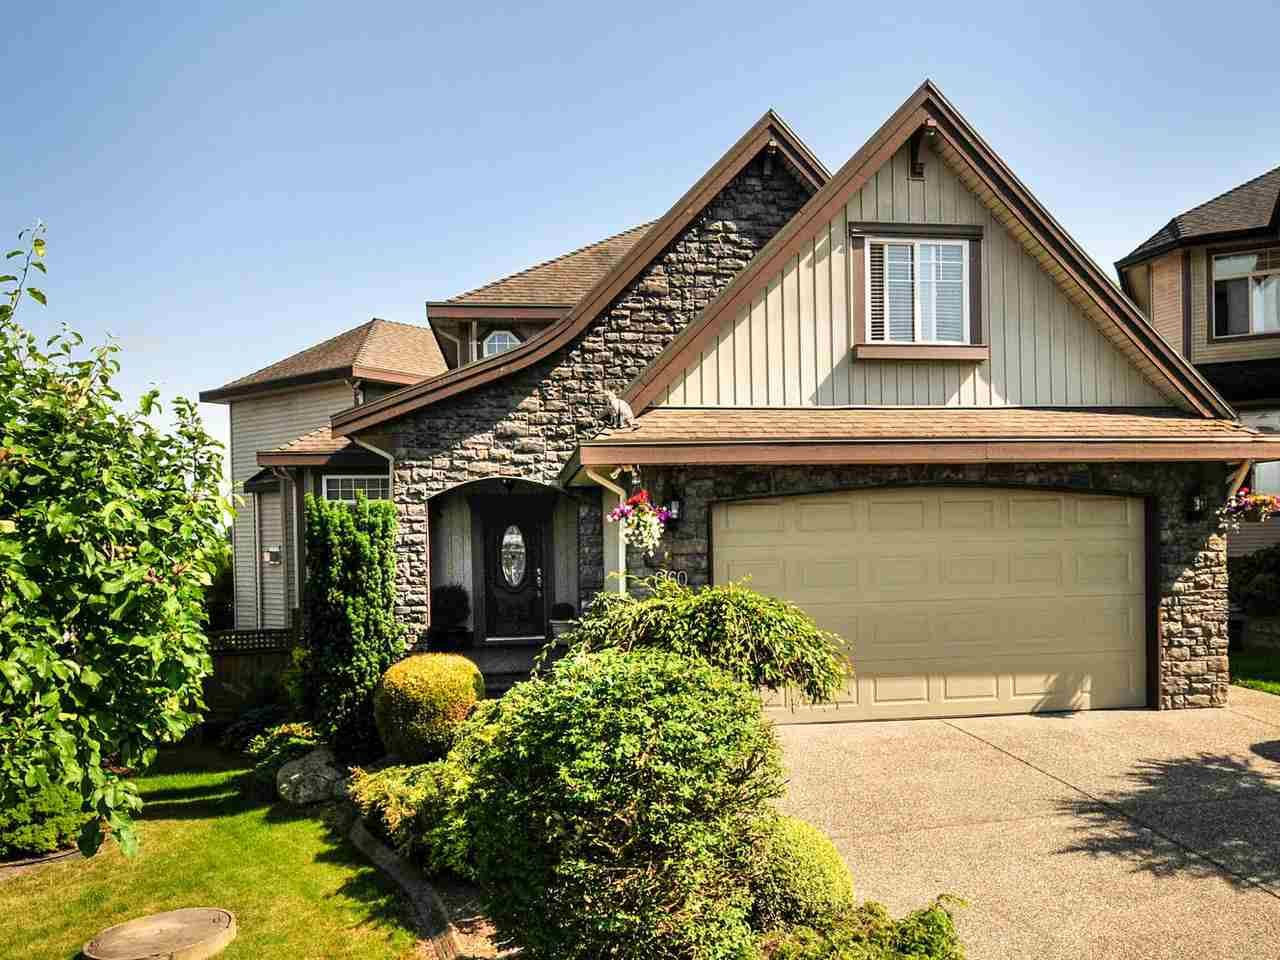 West Cloverdale Beauty! Fabulous 7bdrm/5bath custom design home w/4880sqft of spacious living. Situated on a private, fully fenced 7,309sqft lot with an endless view of the mountains. Quiet cul-de-sac location.  Bonus Air Conditioning and oversized garage